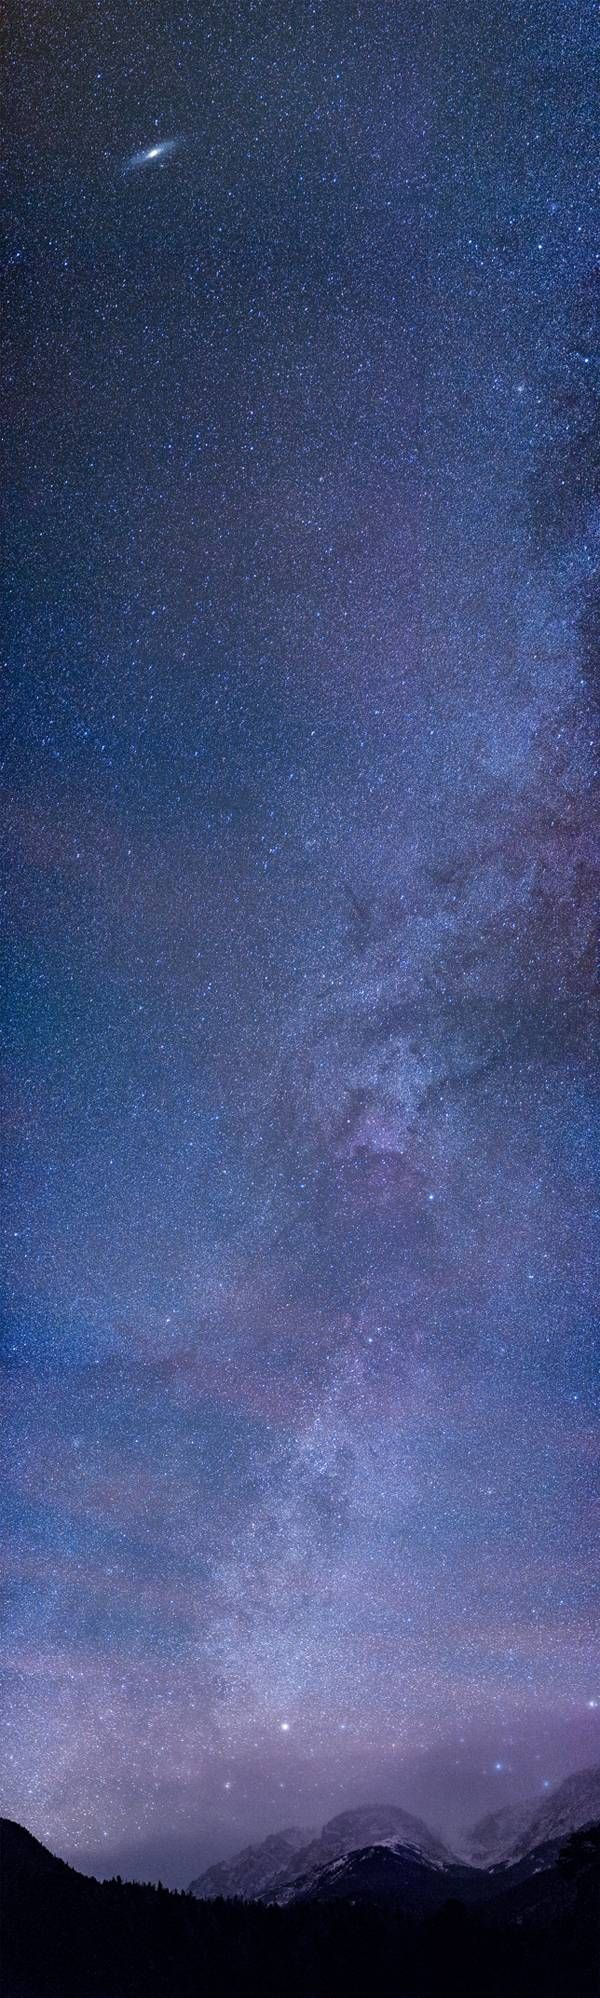 Milky Way vertical panorama featuring the Andromeda Galaxy